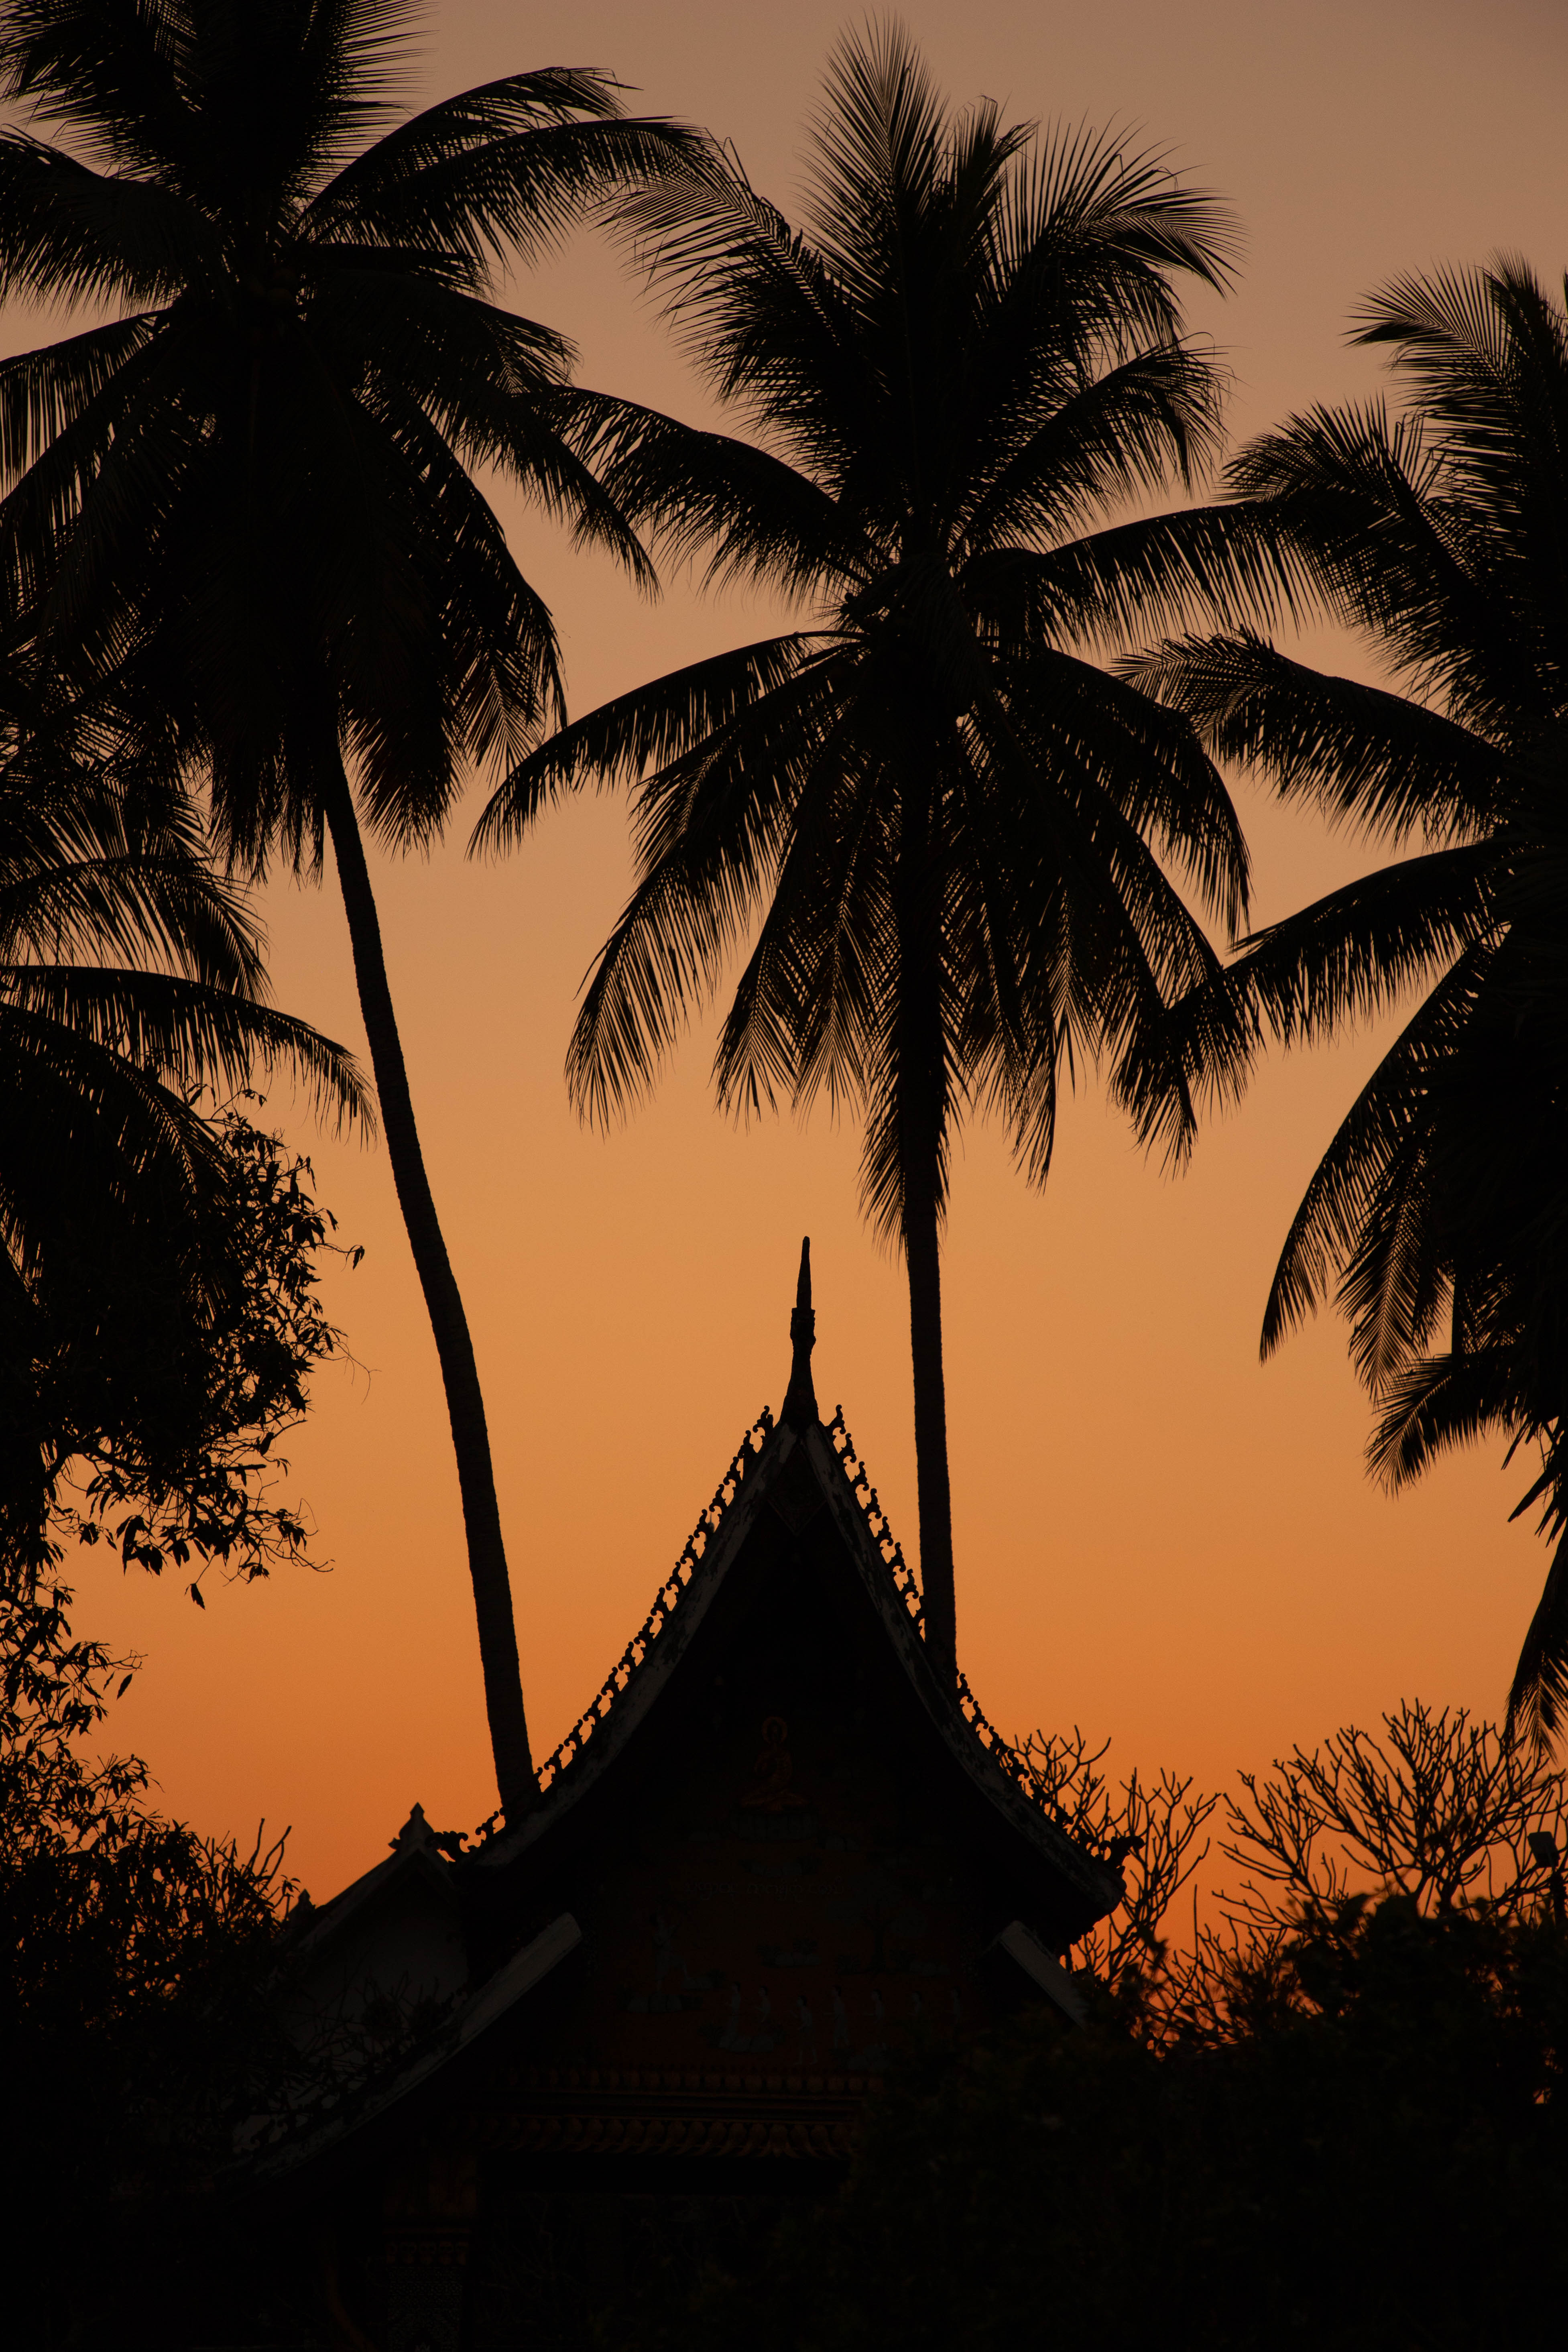 Sunset In Luang Prabang